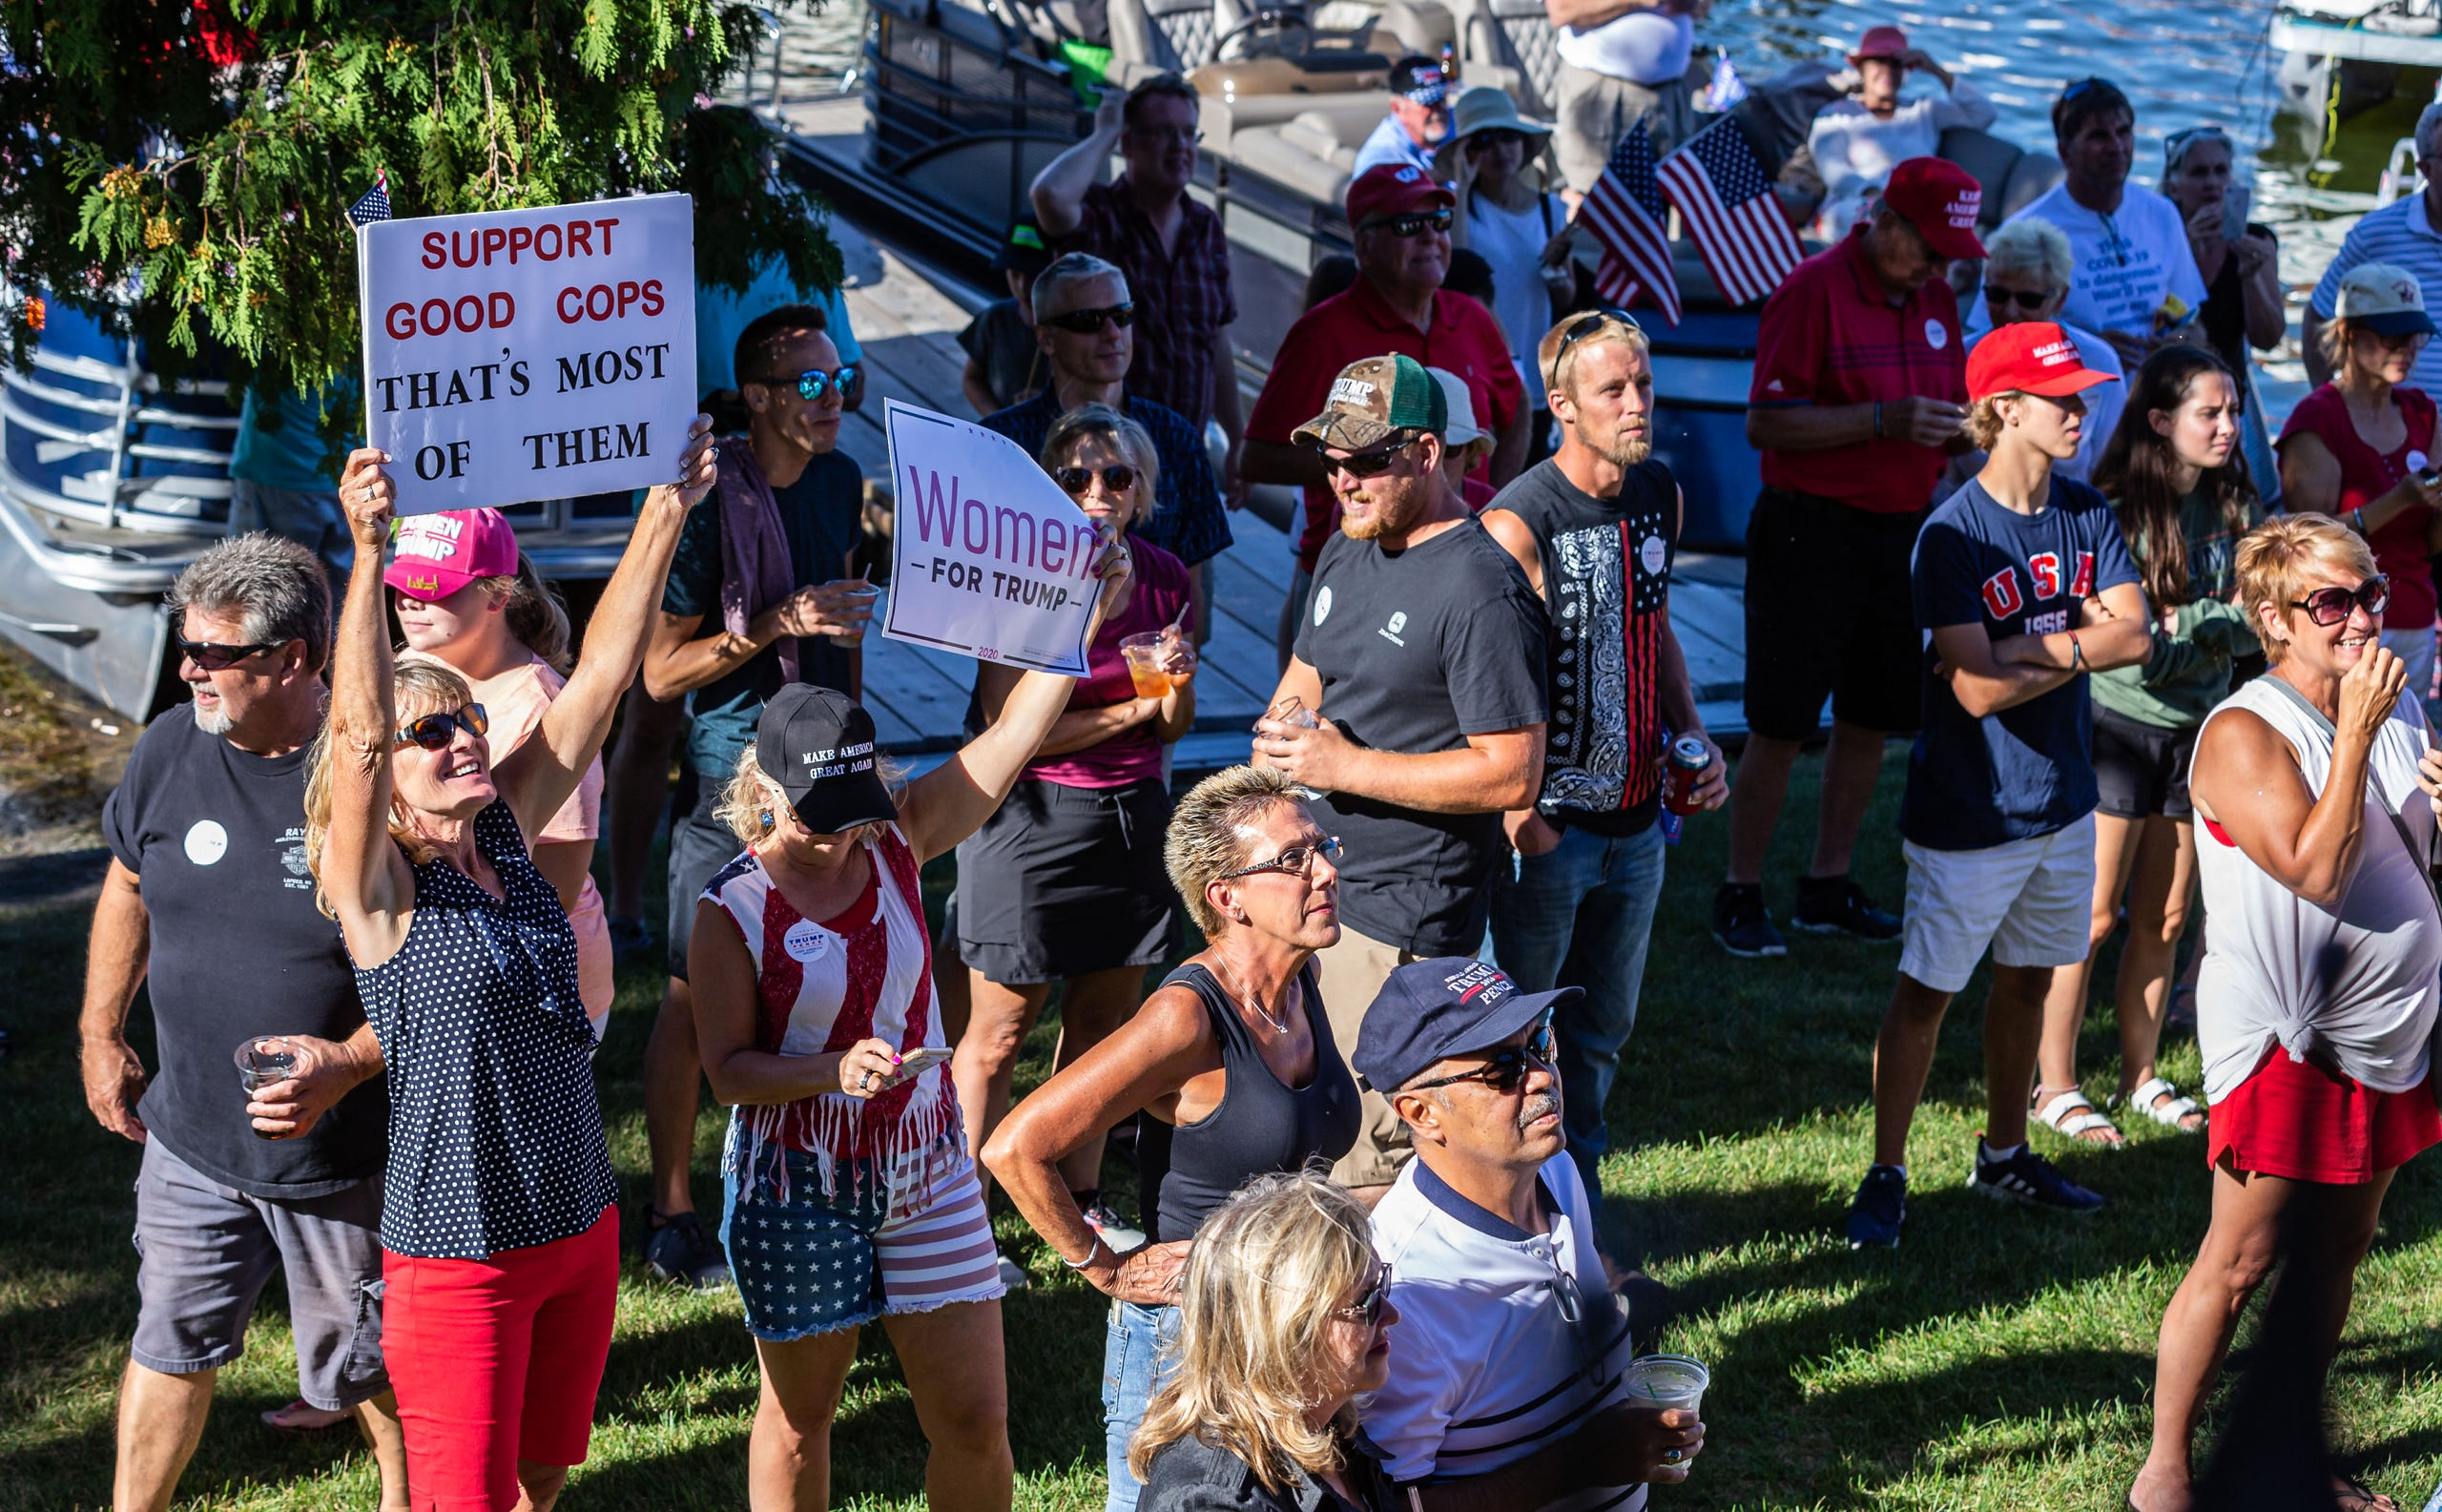 People gather at The Golden Mast restaurant in Okauchee during a boat parade in support of President Trump on Saturday, August 29. The event was hosted by the Republican Party of Waukesha County.